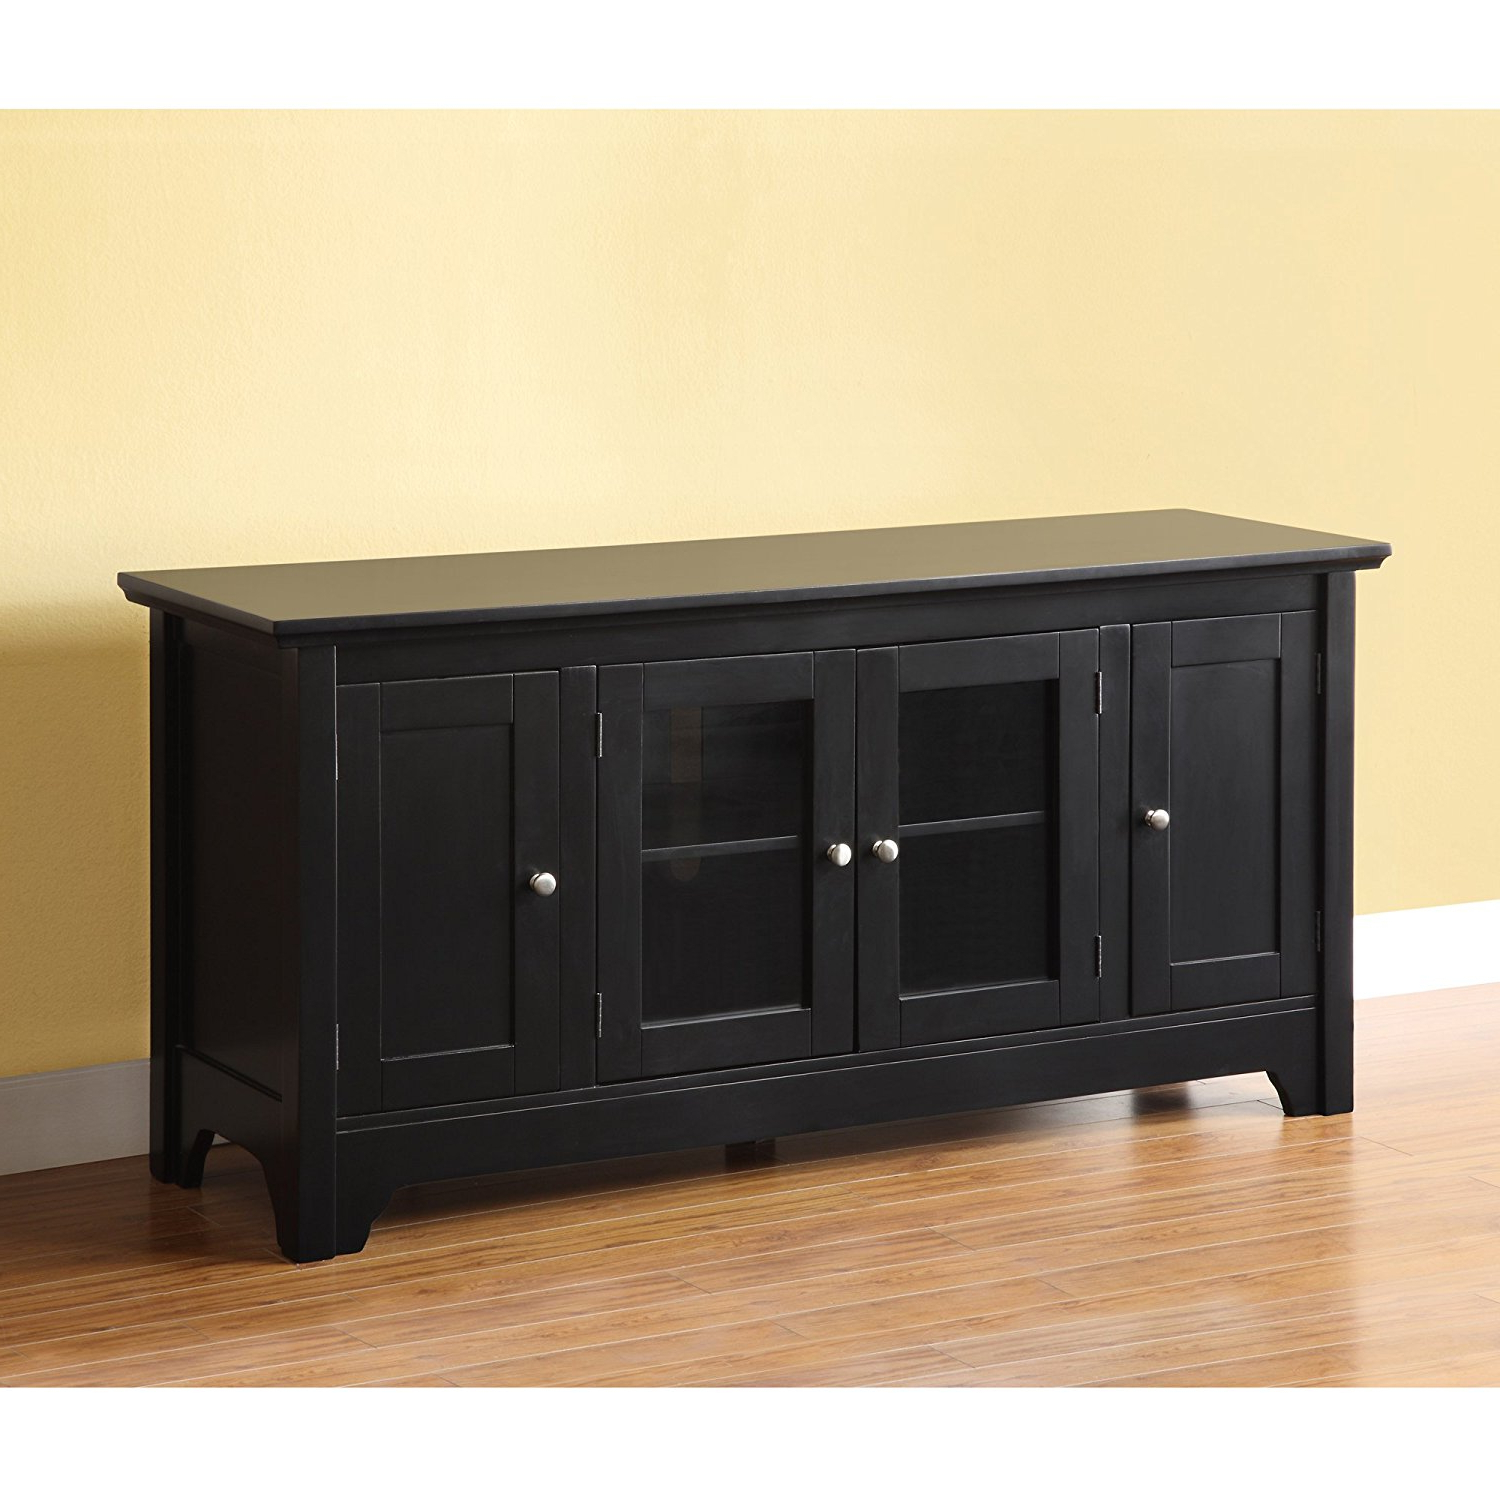 Most Recent Solid Wood Black Tv Stands With Regard To Dark Wood Tv Stand Amazon: Walker Edison 53 – Furnish Ideas (View 2 of 20)